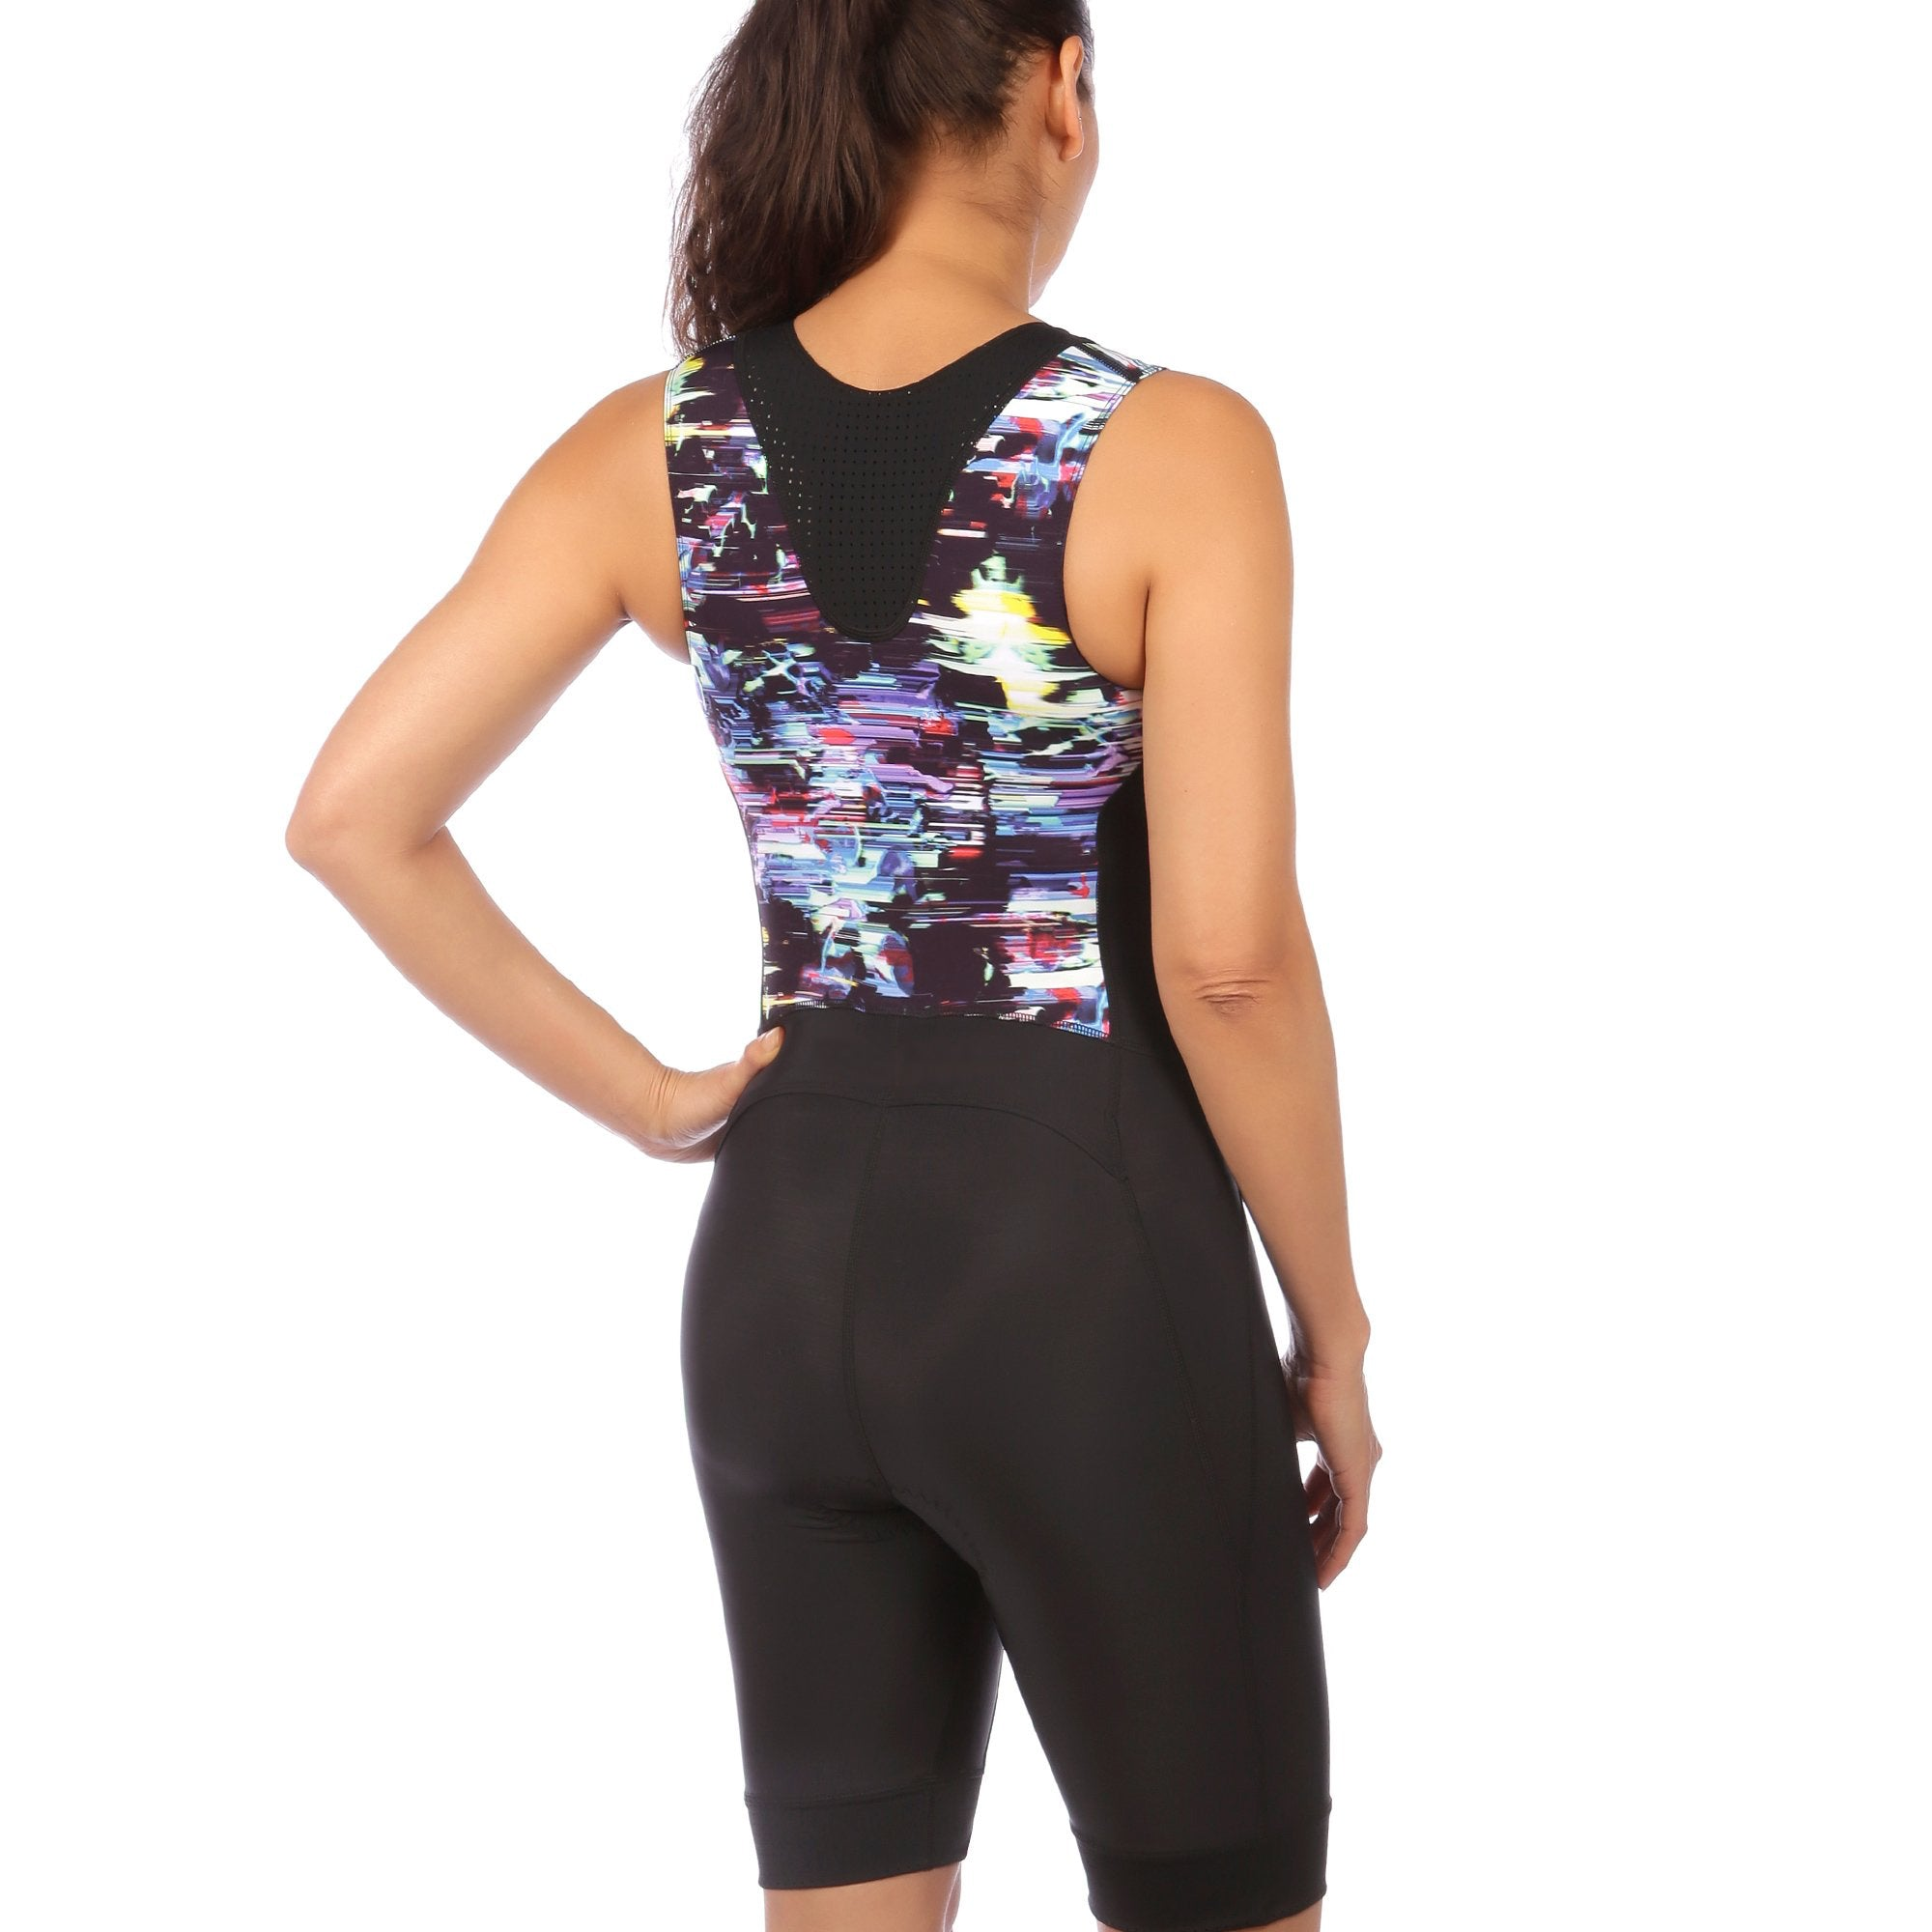 Ritzy Trisuit with/ without Support Bra in Glitched Floral